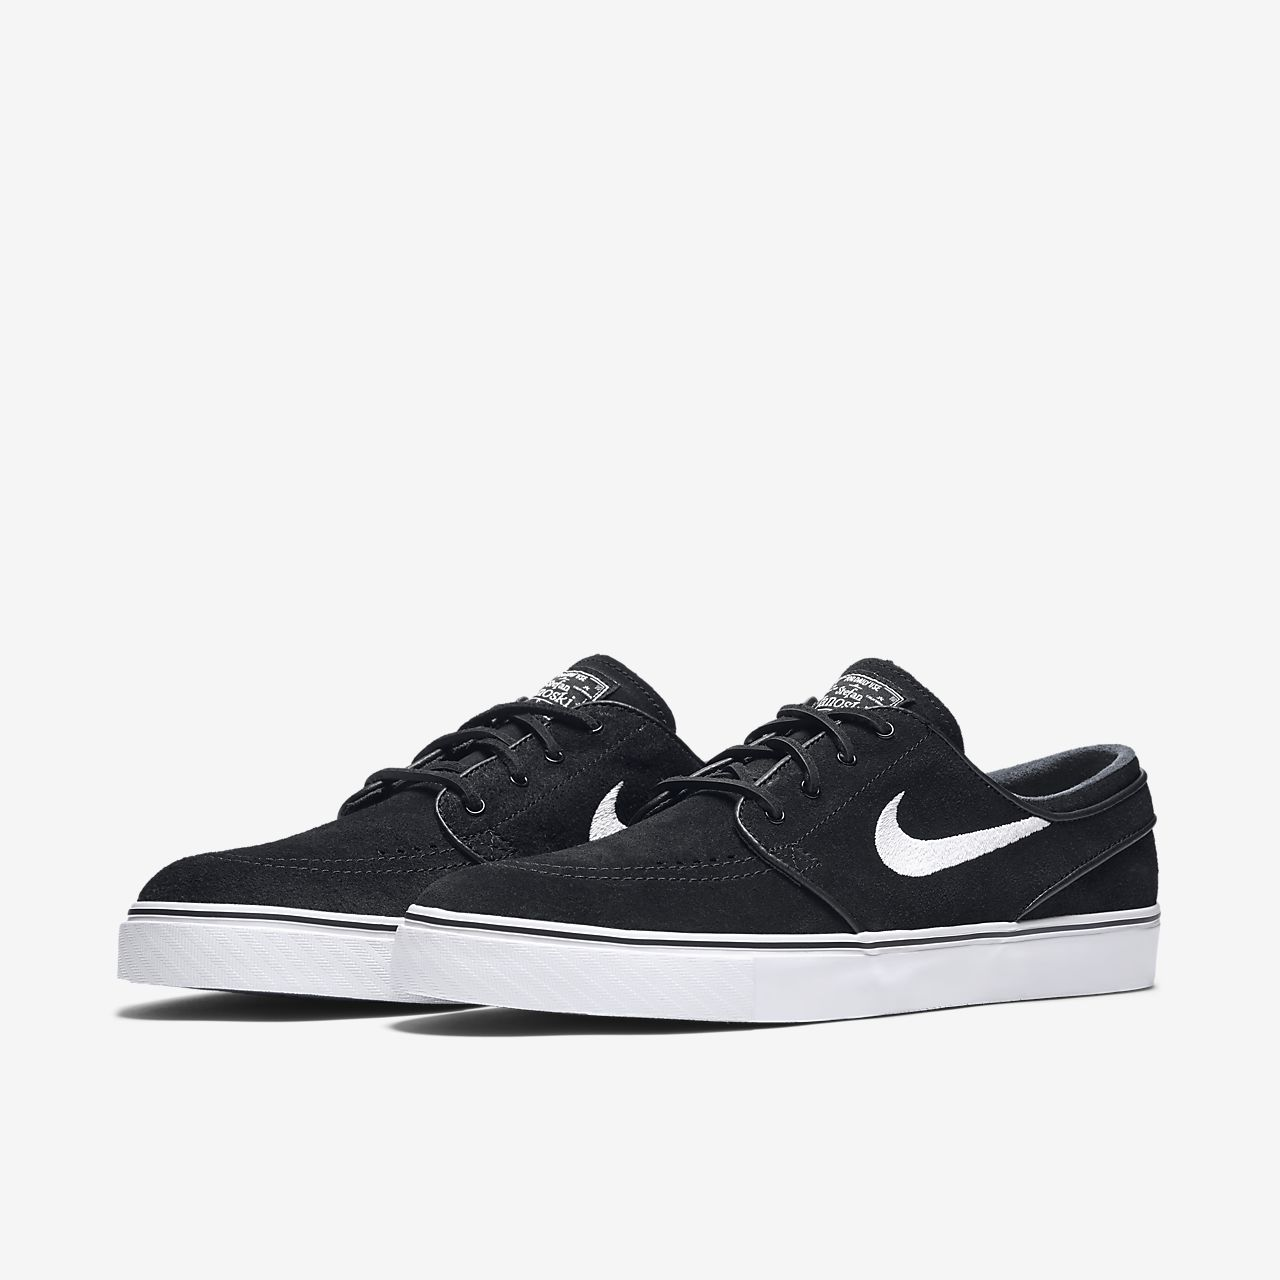 check out 0bf8a 8a361 ... Nike SB Zoom Stefan Janoski OG Men s Skate Shoe